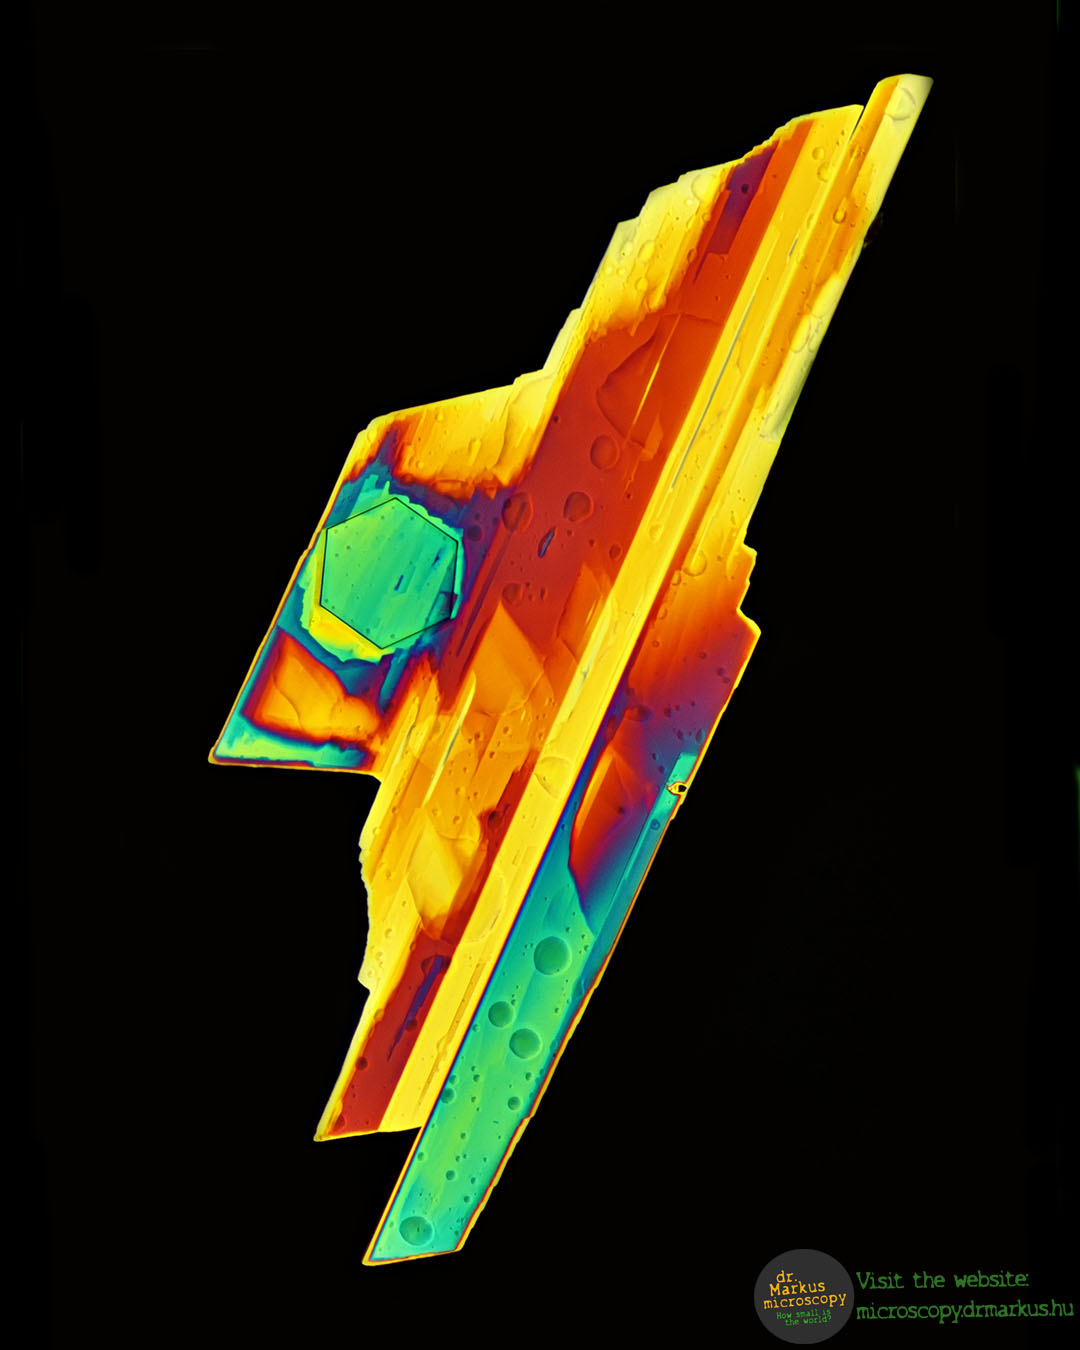 Etomidate crystal in polarized light under the microscope